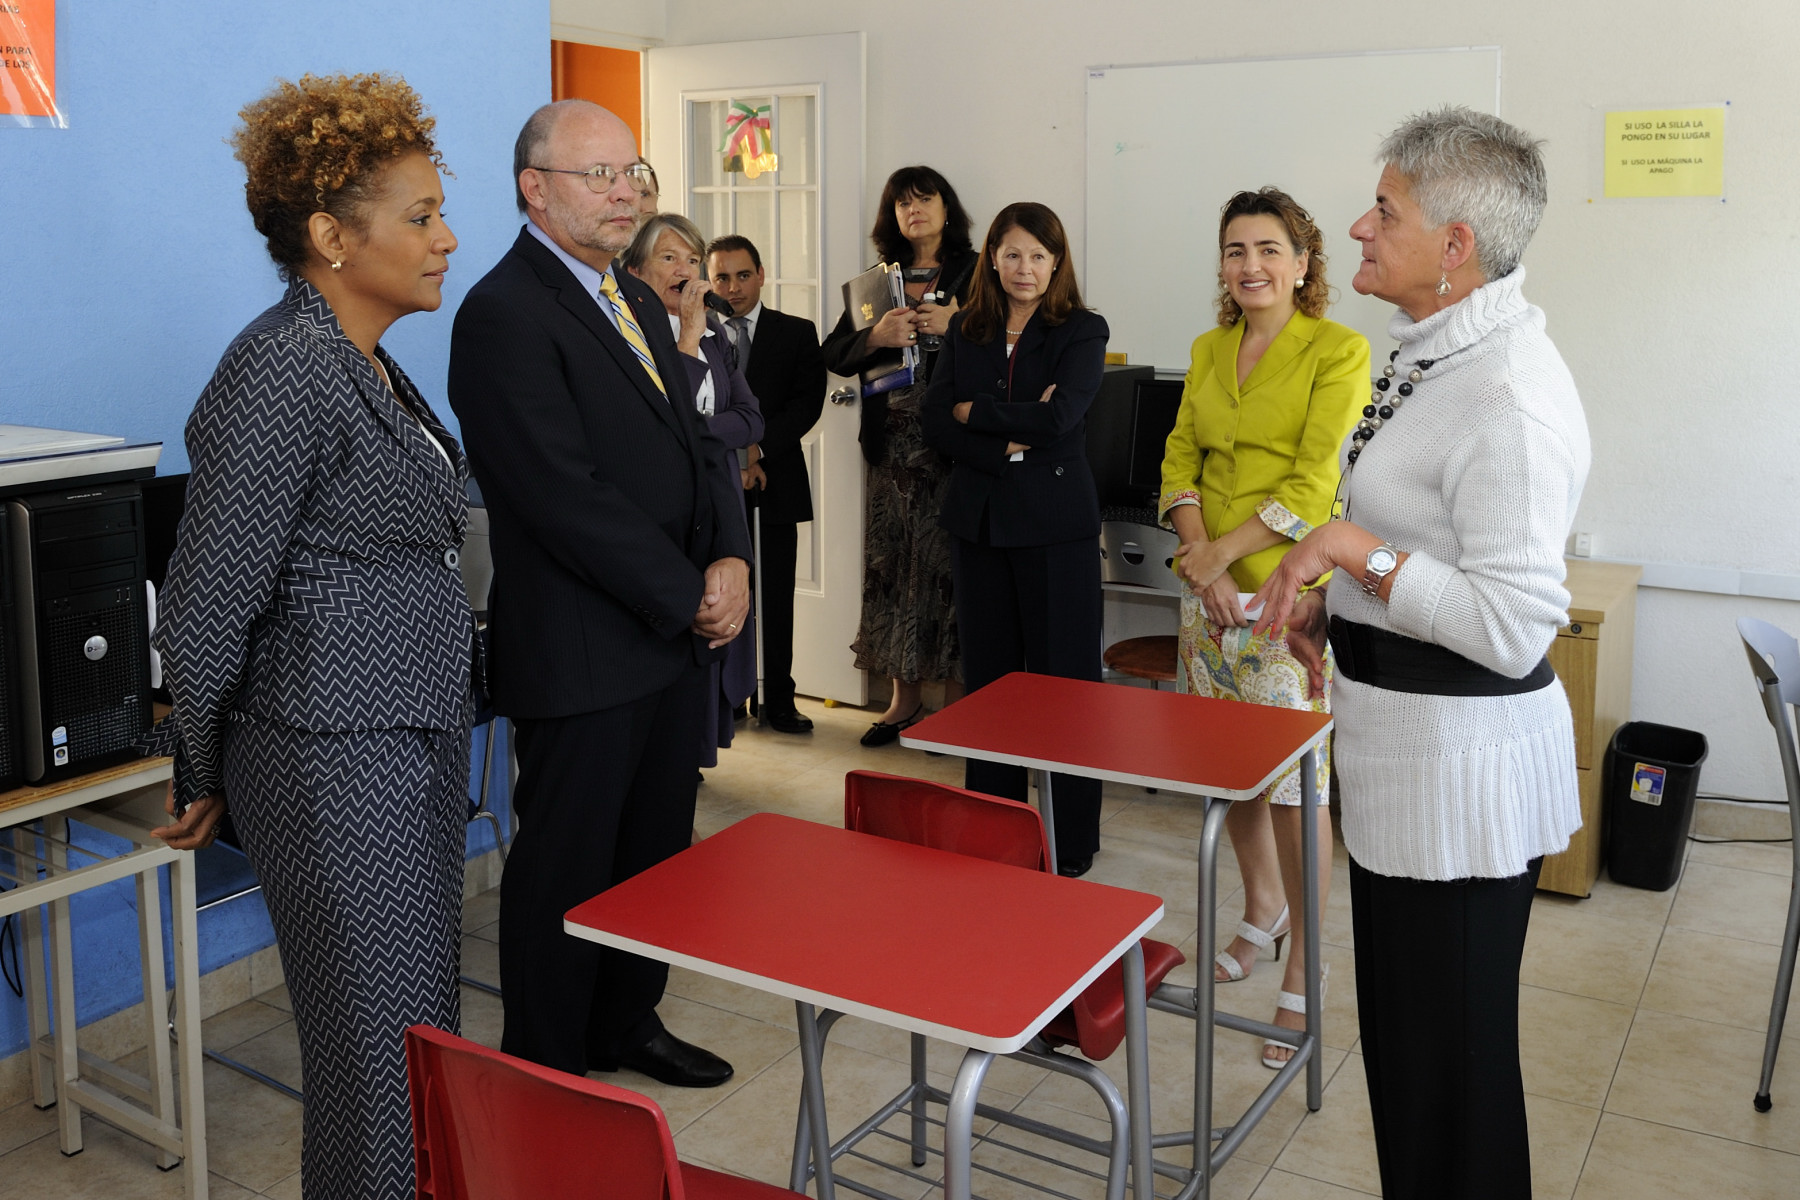 The Governor General also visited an internet classroom. For 25 years, the Canada Fund for Local Initiatives has supported the efforts of Mexican civil society organizations such as La Casa de la Sal.